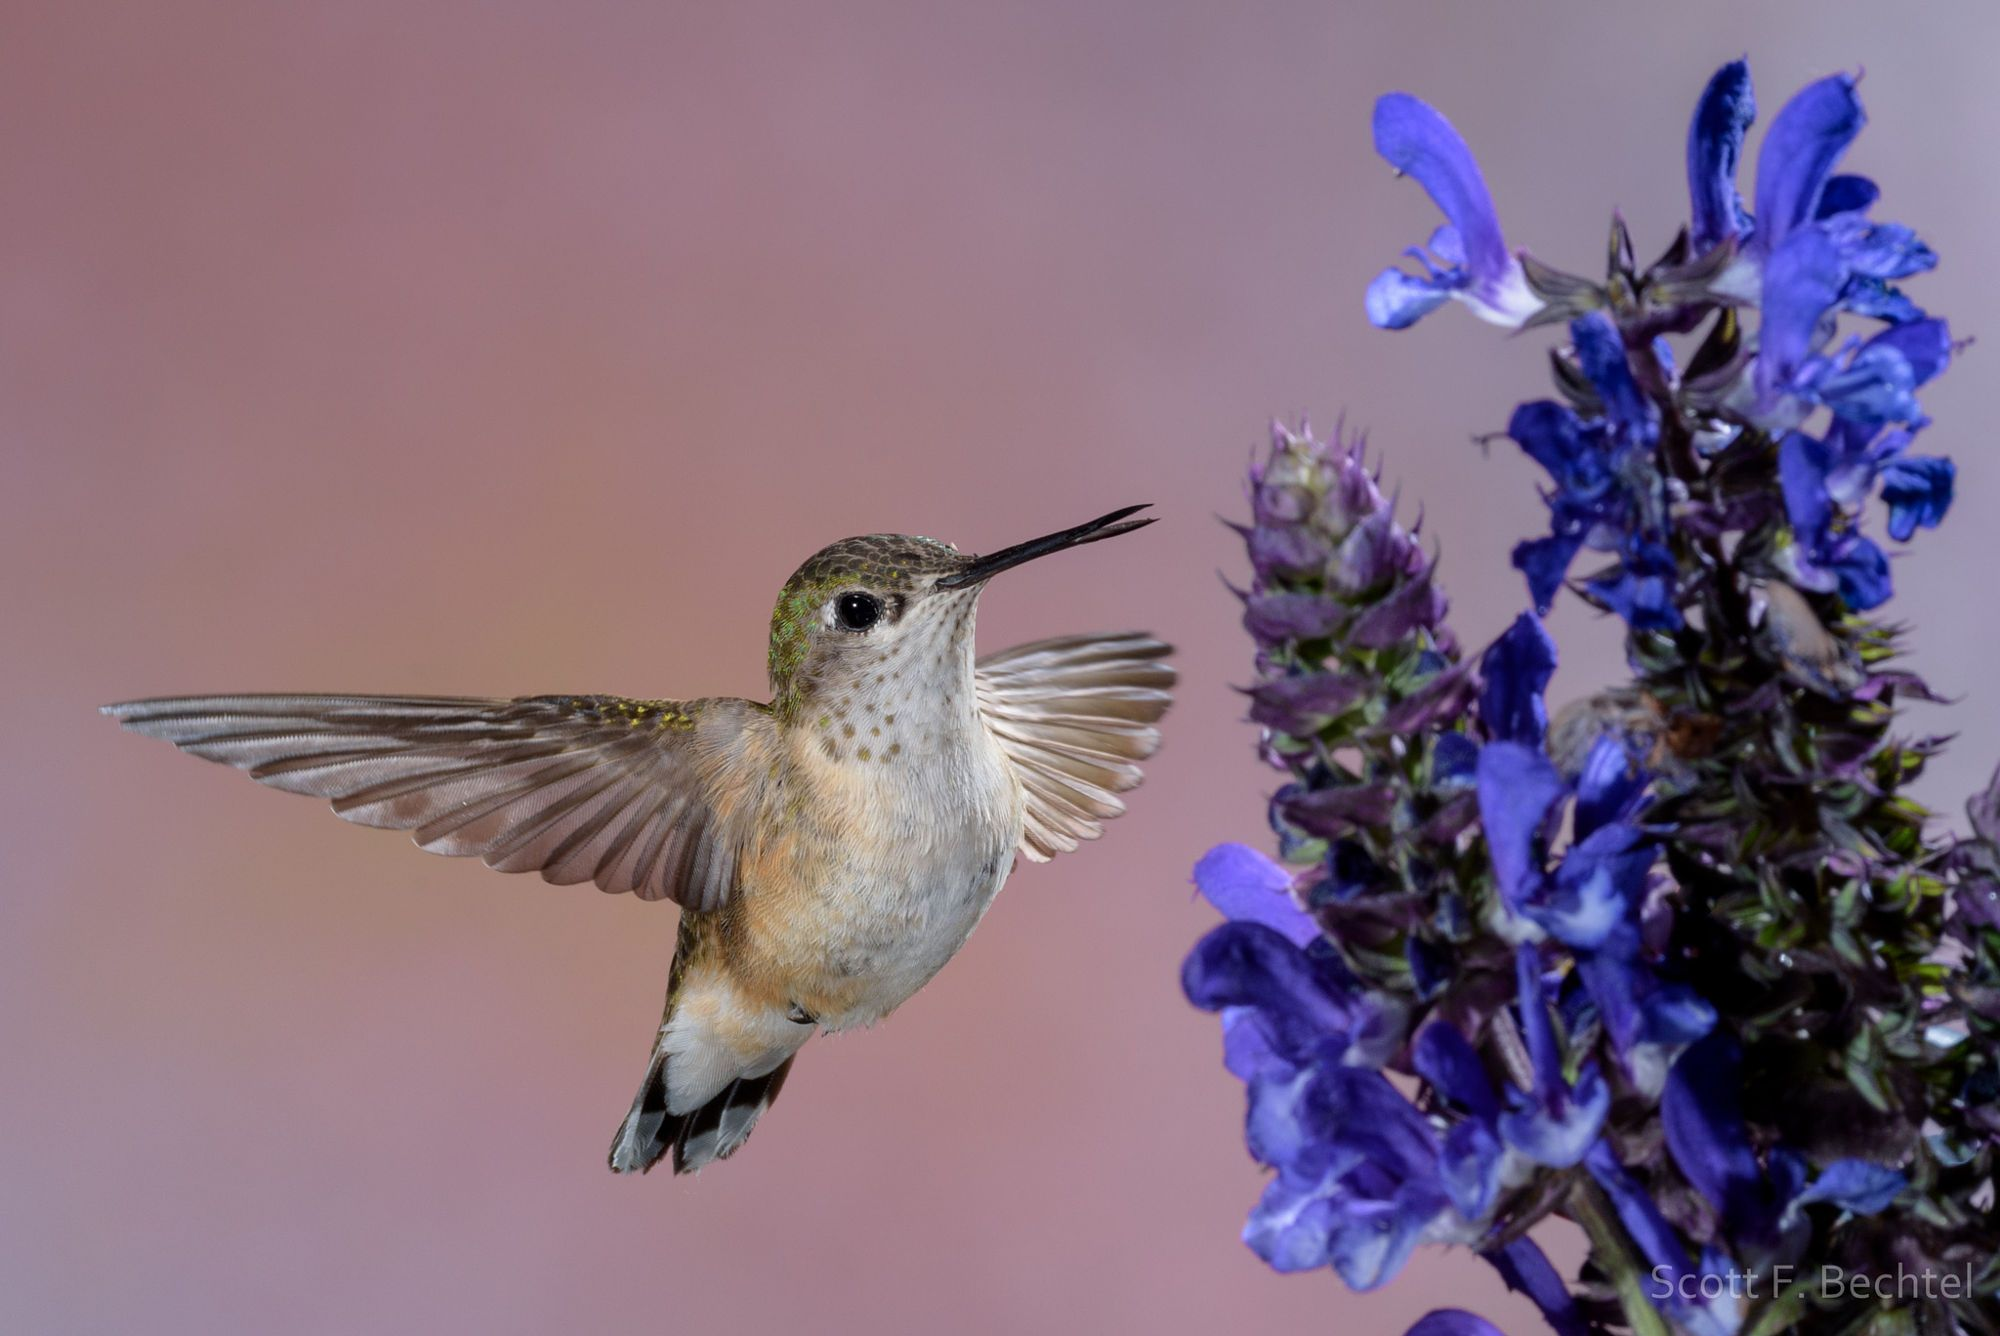 A Female Calliope Hummingbird Taken At The Bull River Guest Ranch During The 2016 Gerlach Nature Photography Hummingbird Workshop This Image Was Fotos Bosque